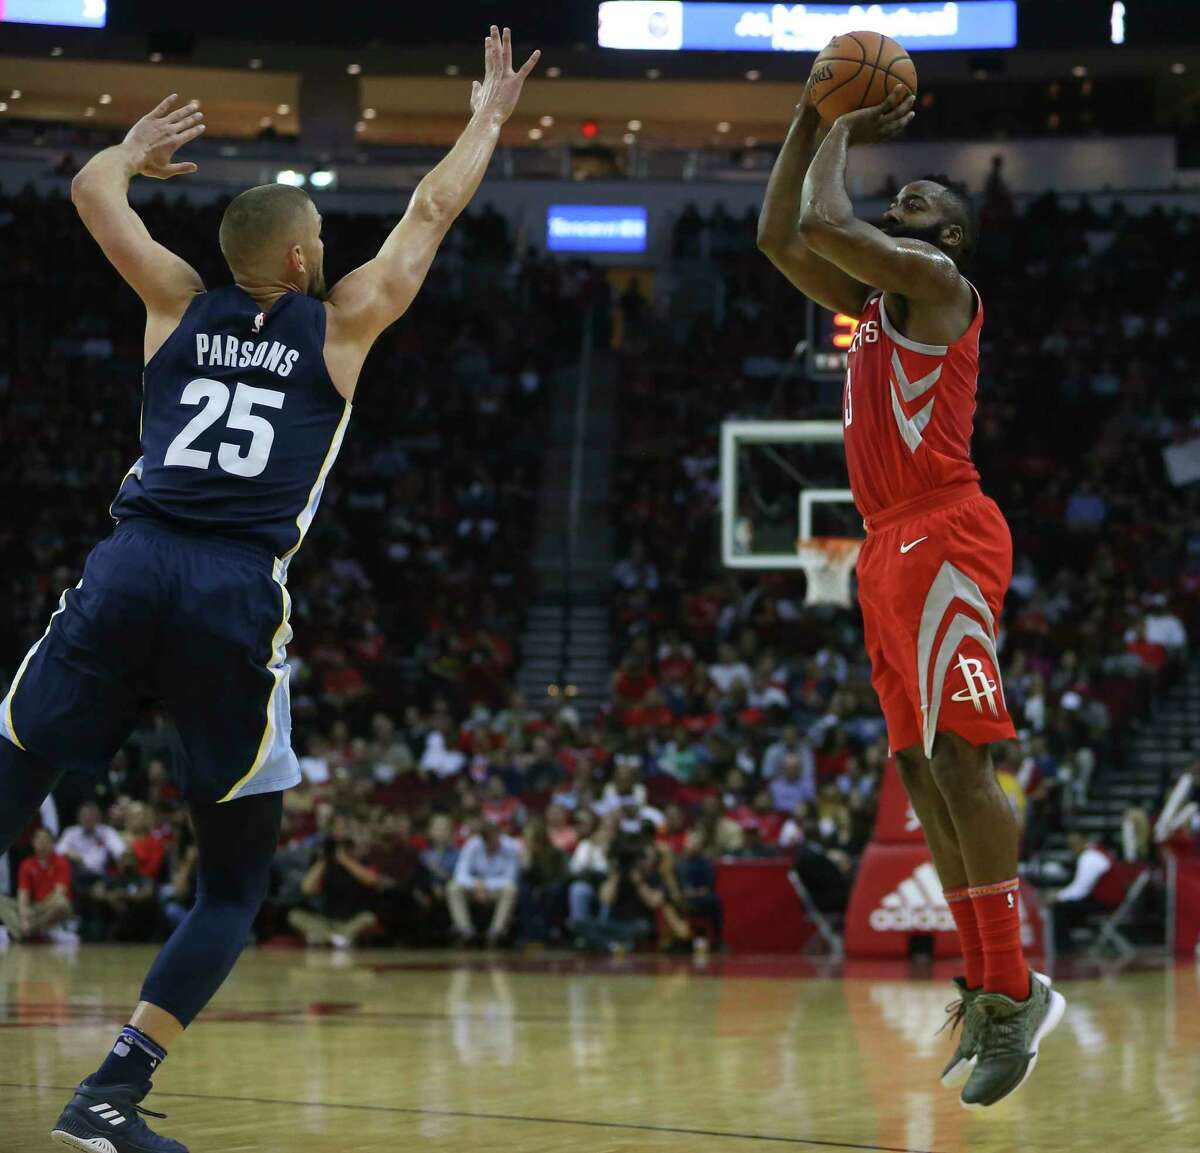 Guard James Harden, right, has flourished as both a scorer and facilitator in the Rockets' high-powered offense, averaging 31.5 points and 9.8 assists per game to lift the team to the top of the Western Conference.